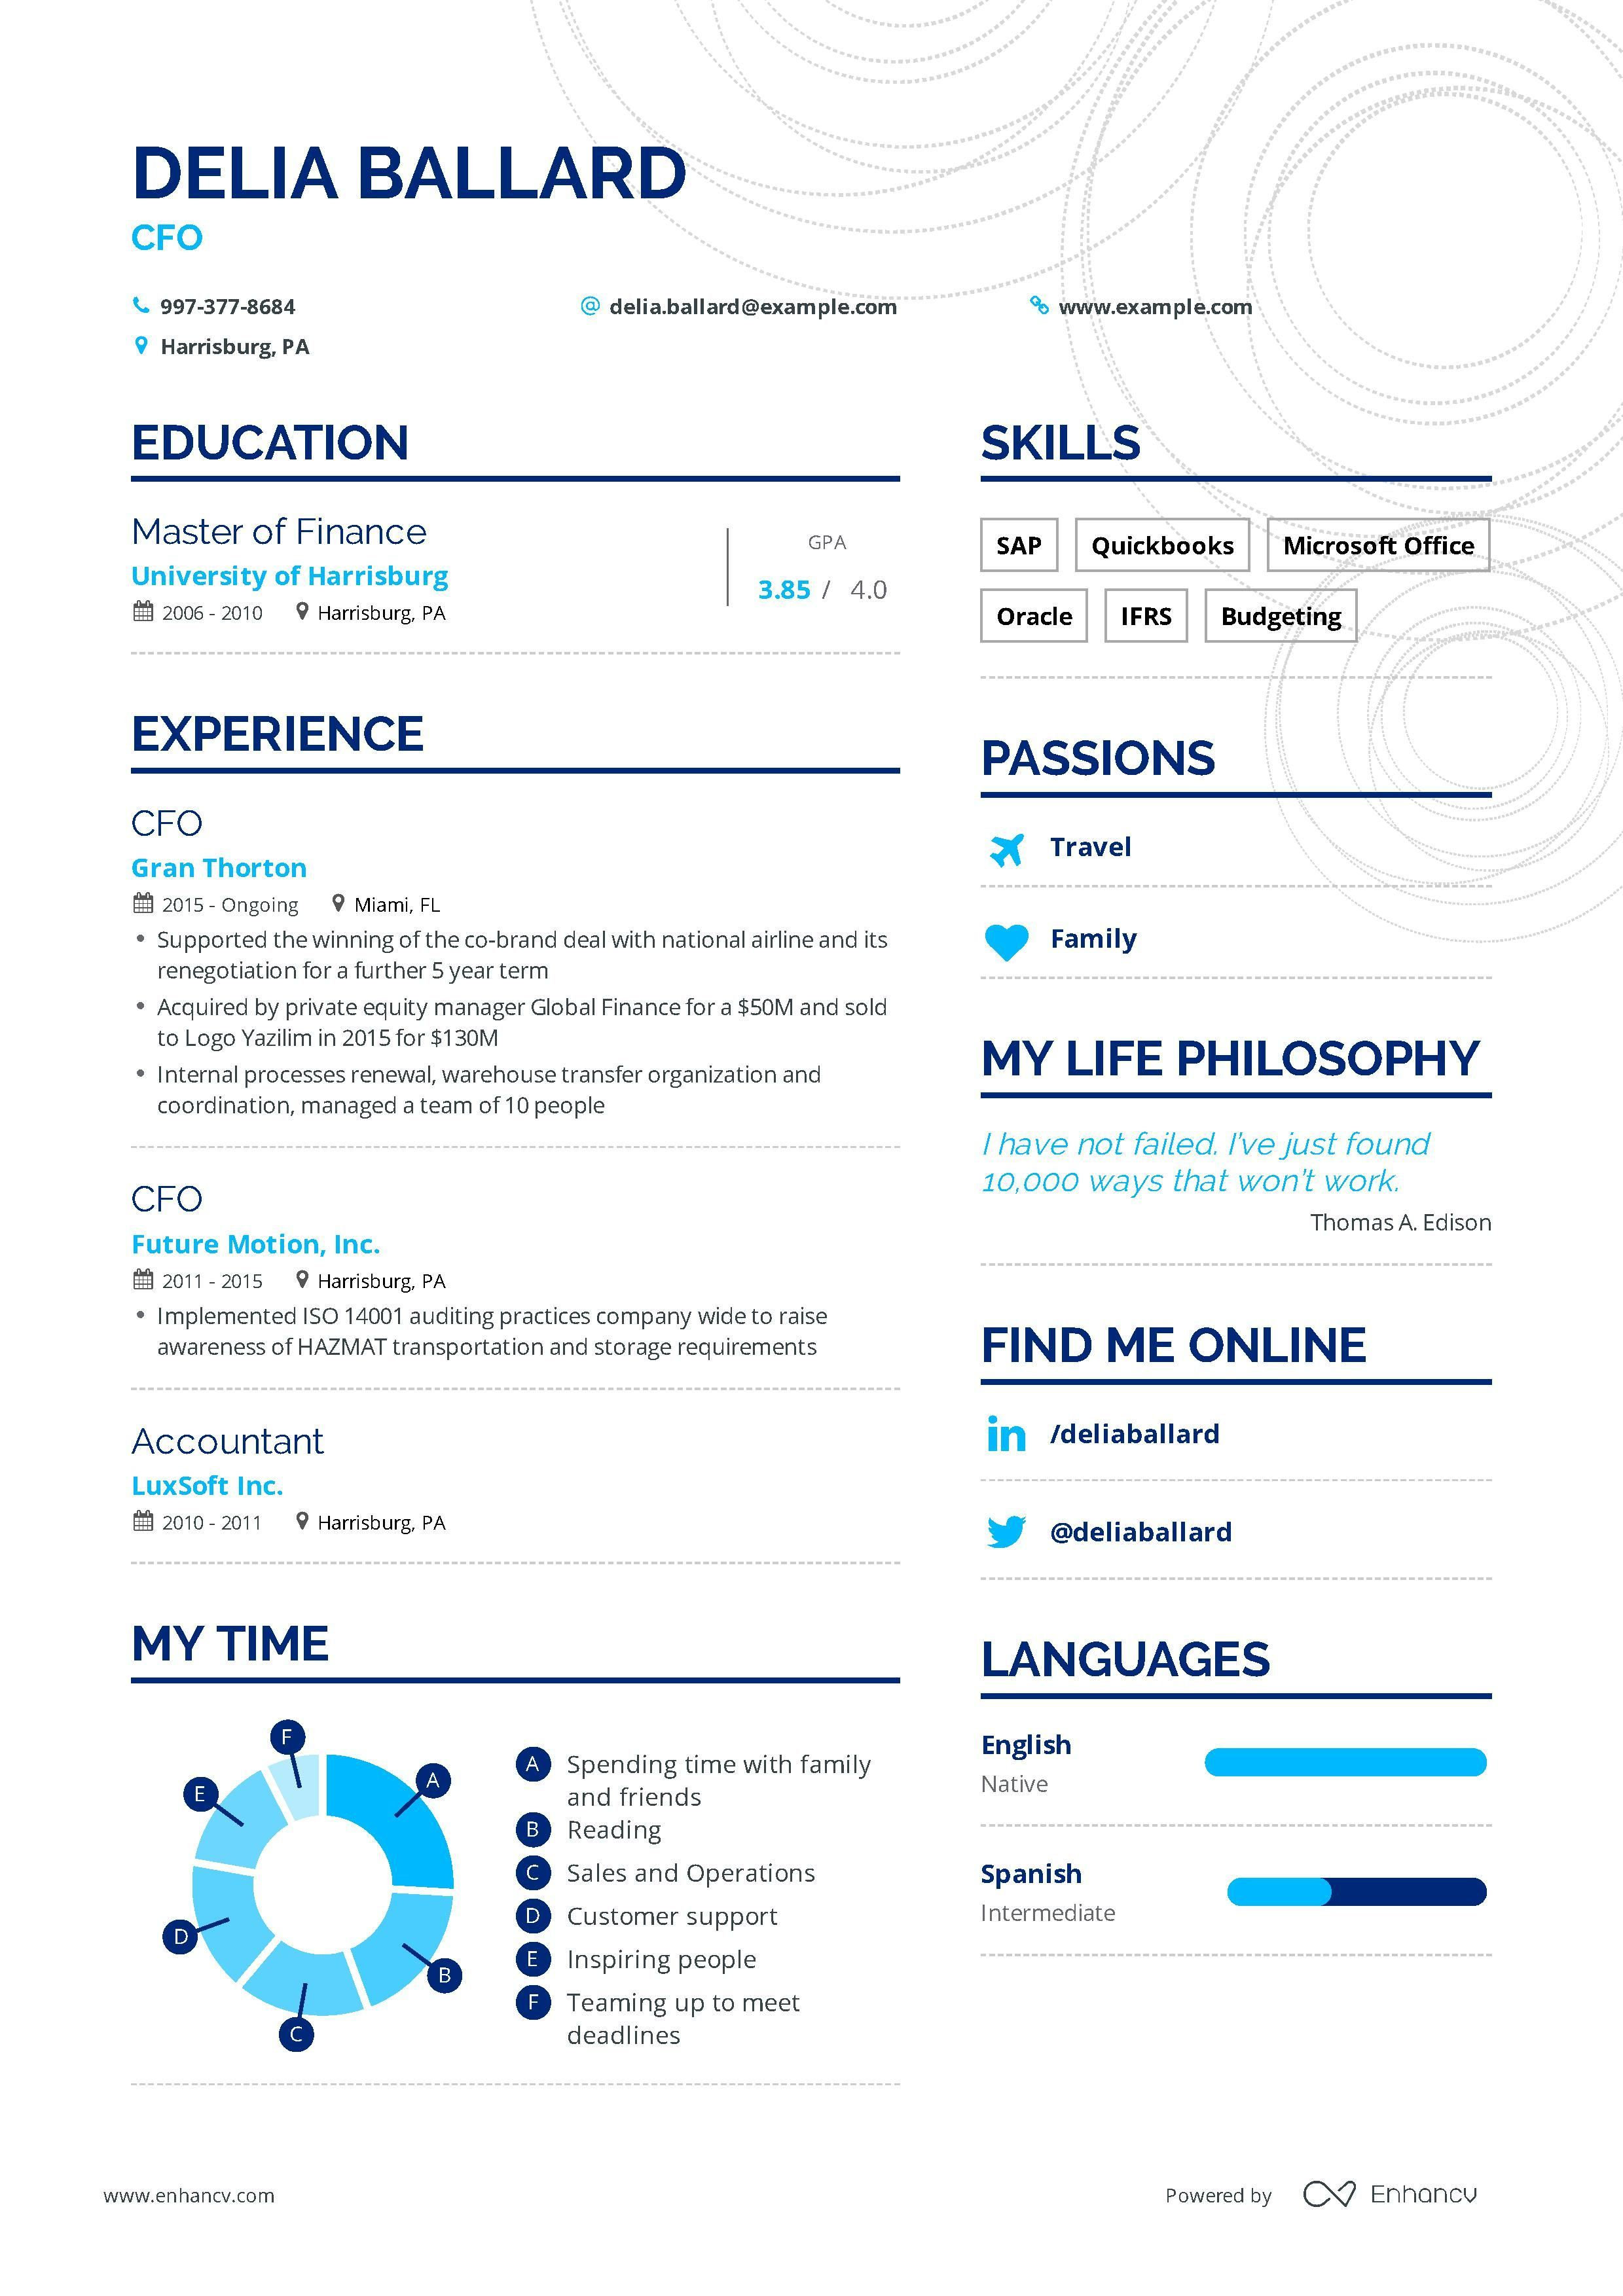 Cfo Resume Example And Guide For 2019 Business Management And Leadership Resume Examples Cfo Res Resume Examples Business Management Resume Writing Tips